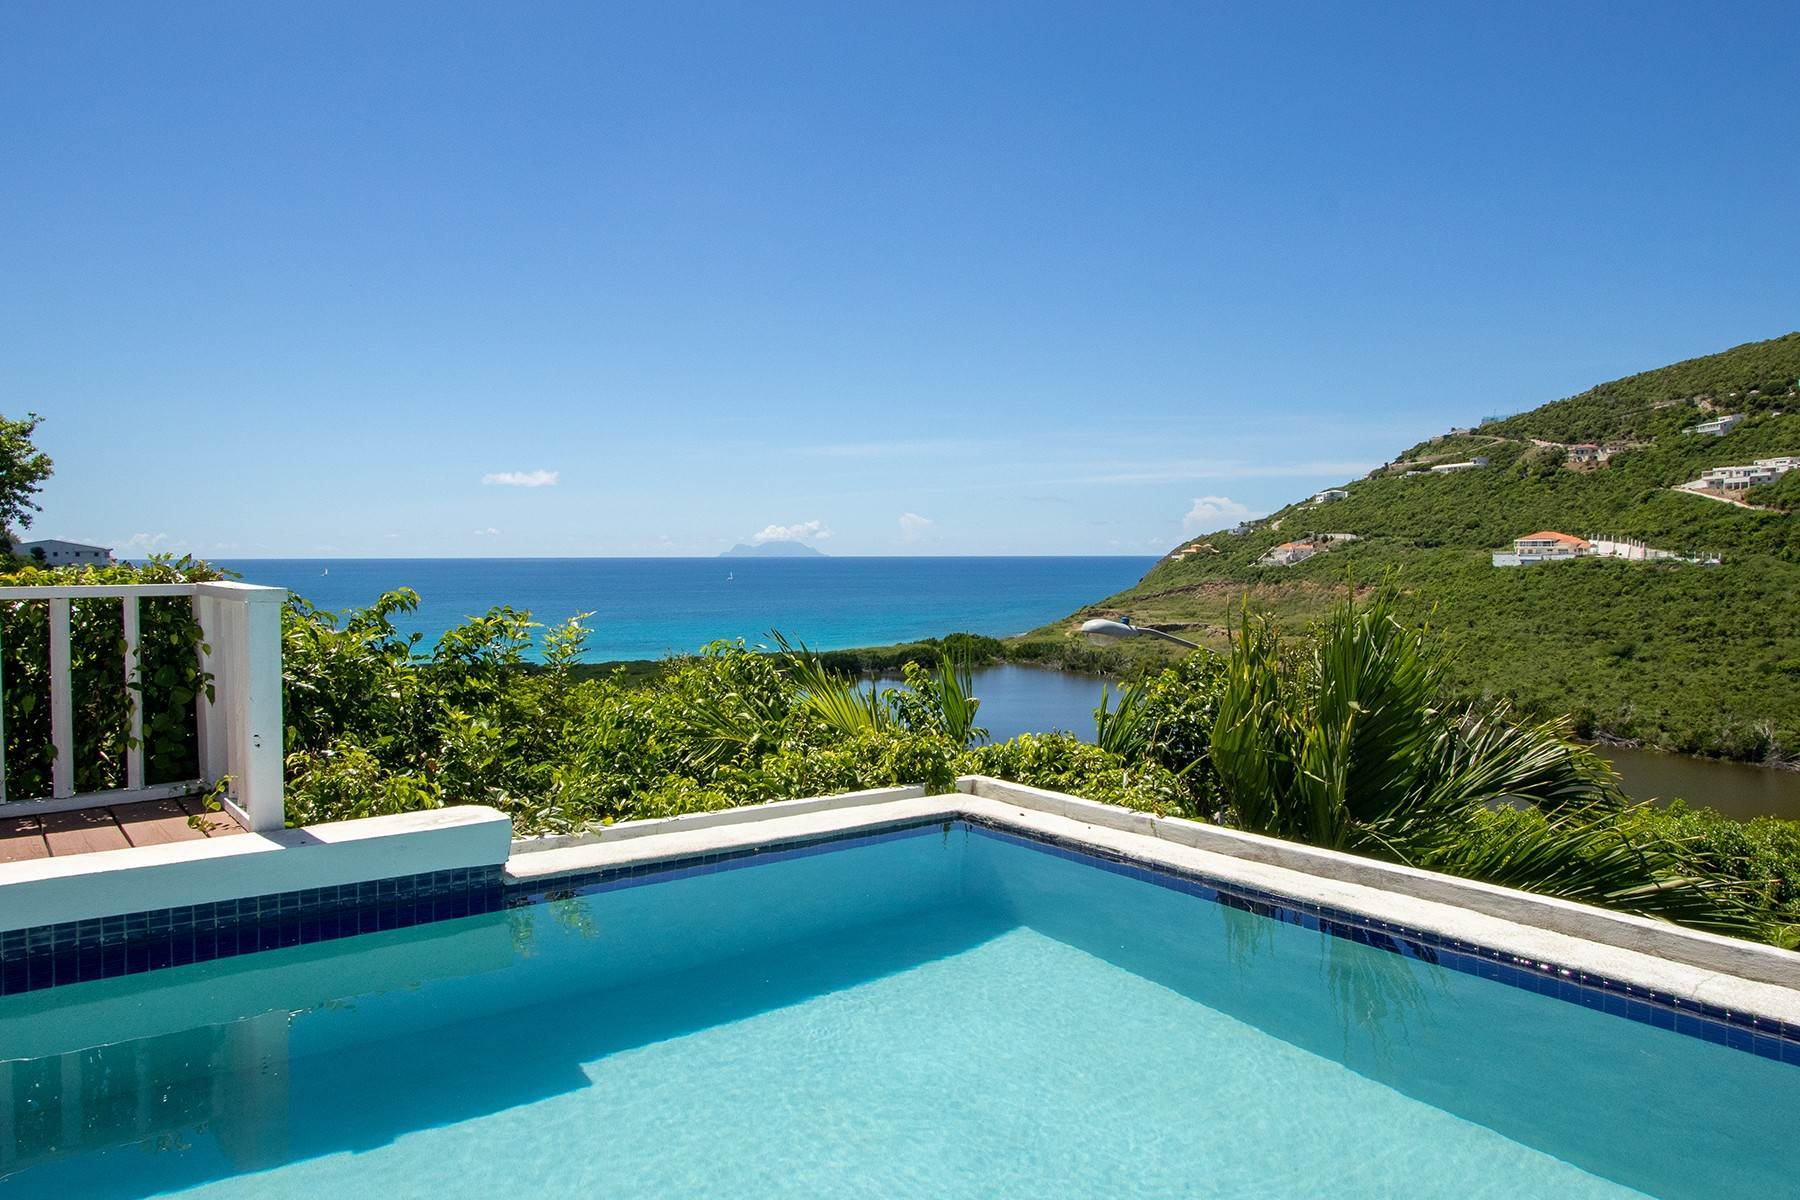 Single Family Homes for Sale at Villa La Dolce Vita Belair, St. Maarten